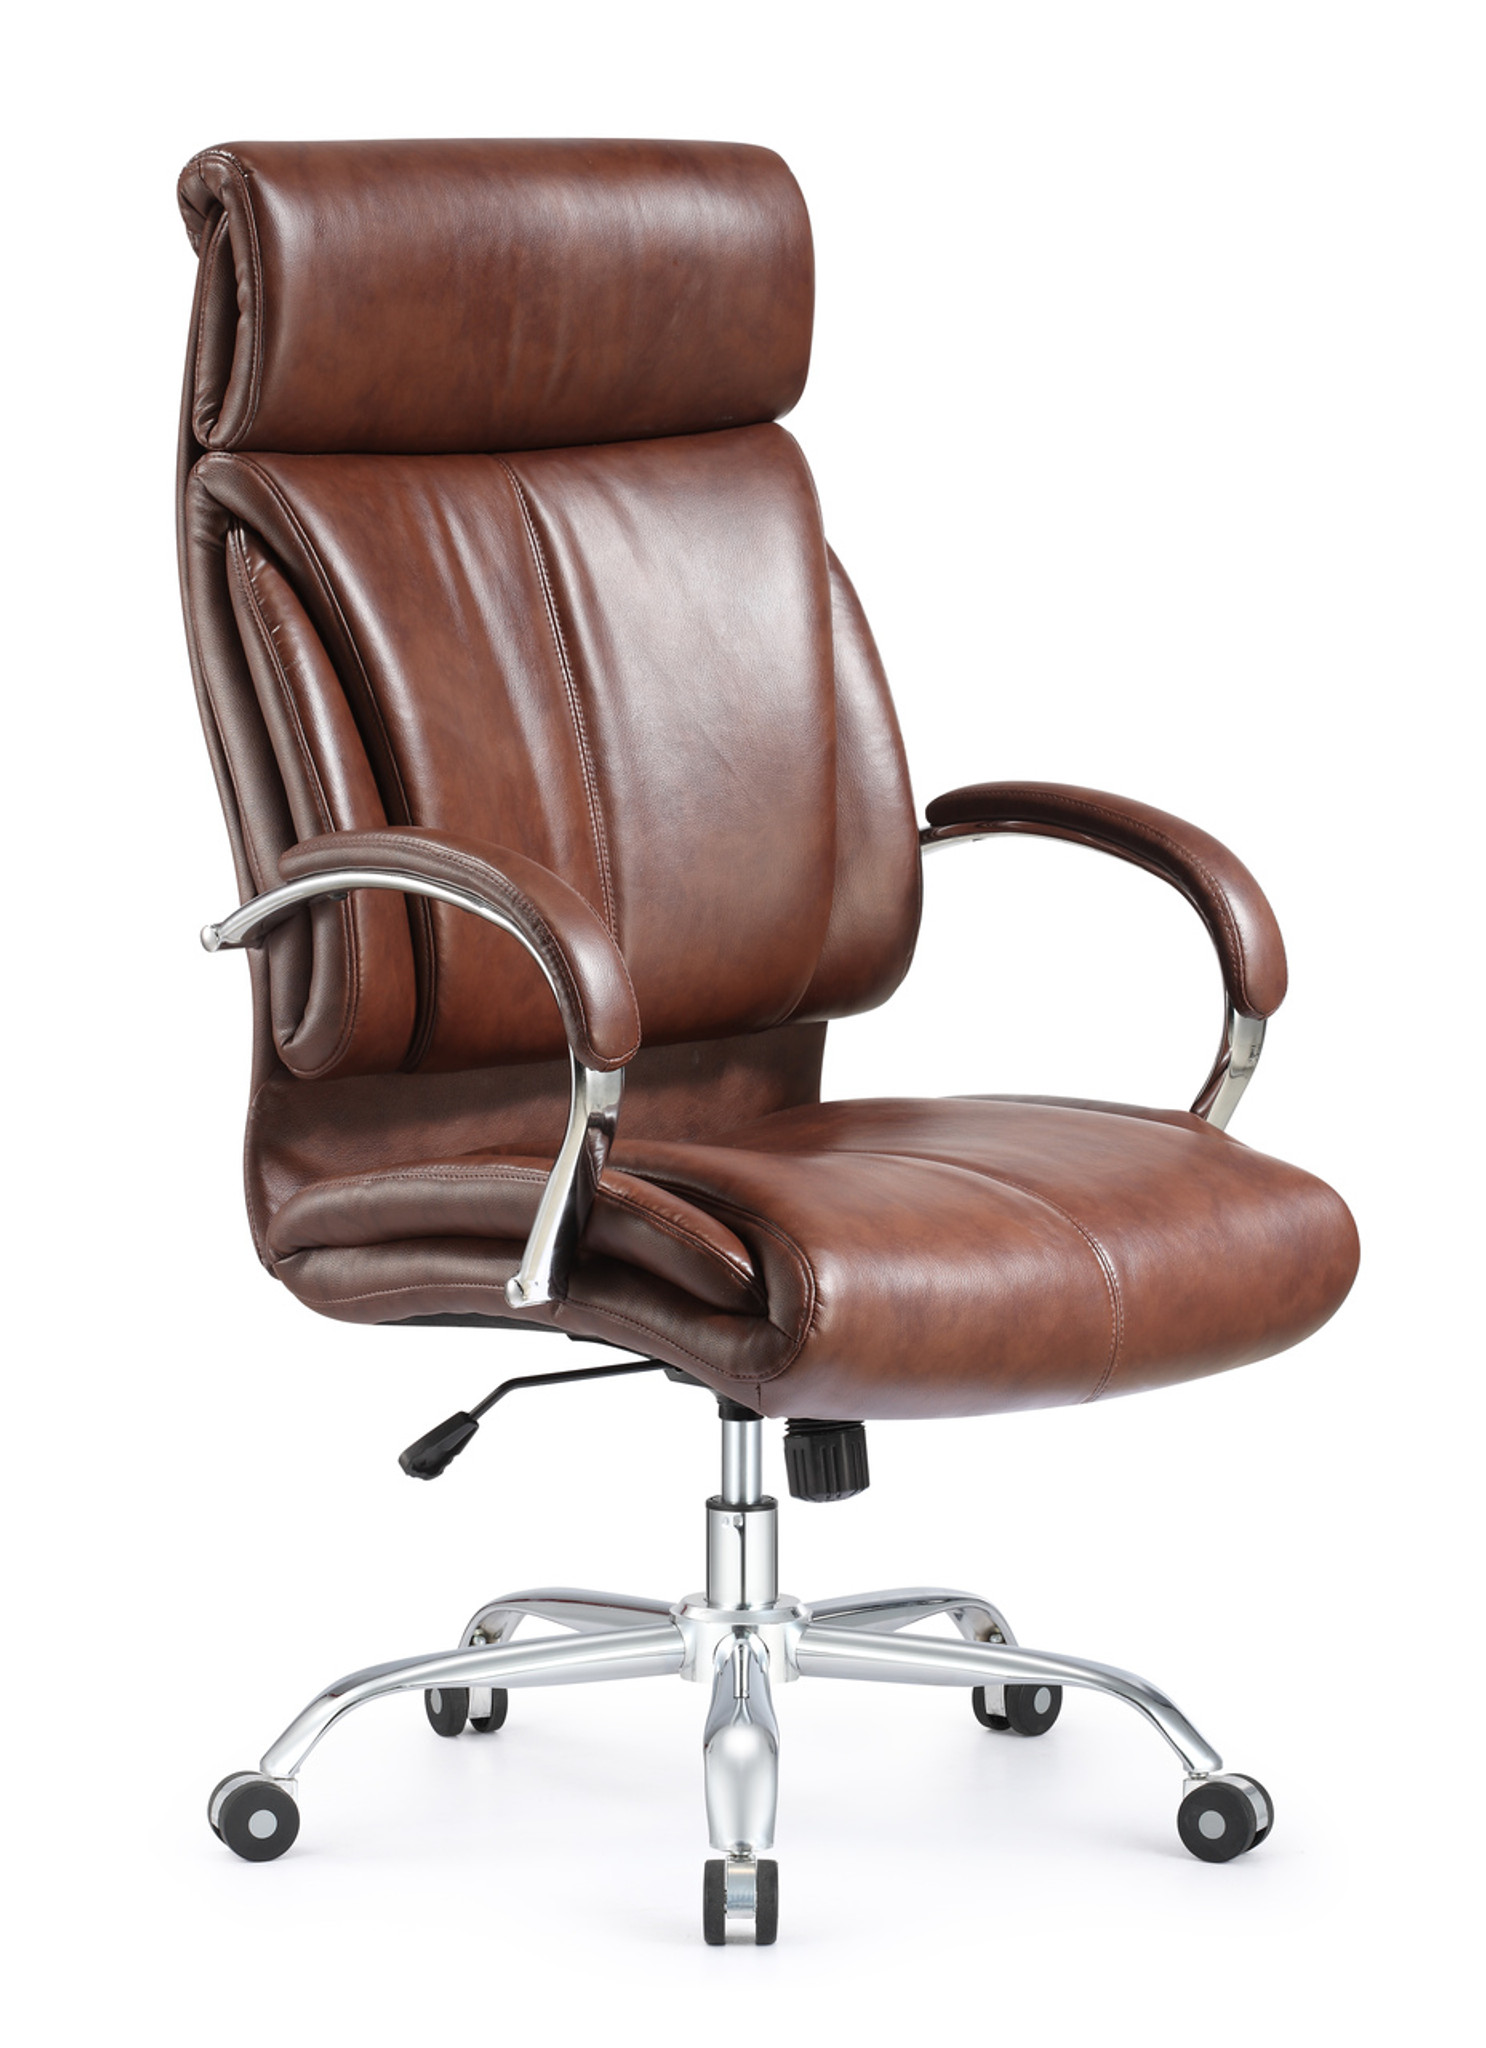 Ergonomic Style And Vintage High Back Leather Office Chair Brown Leather  Chair